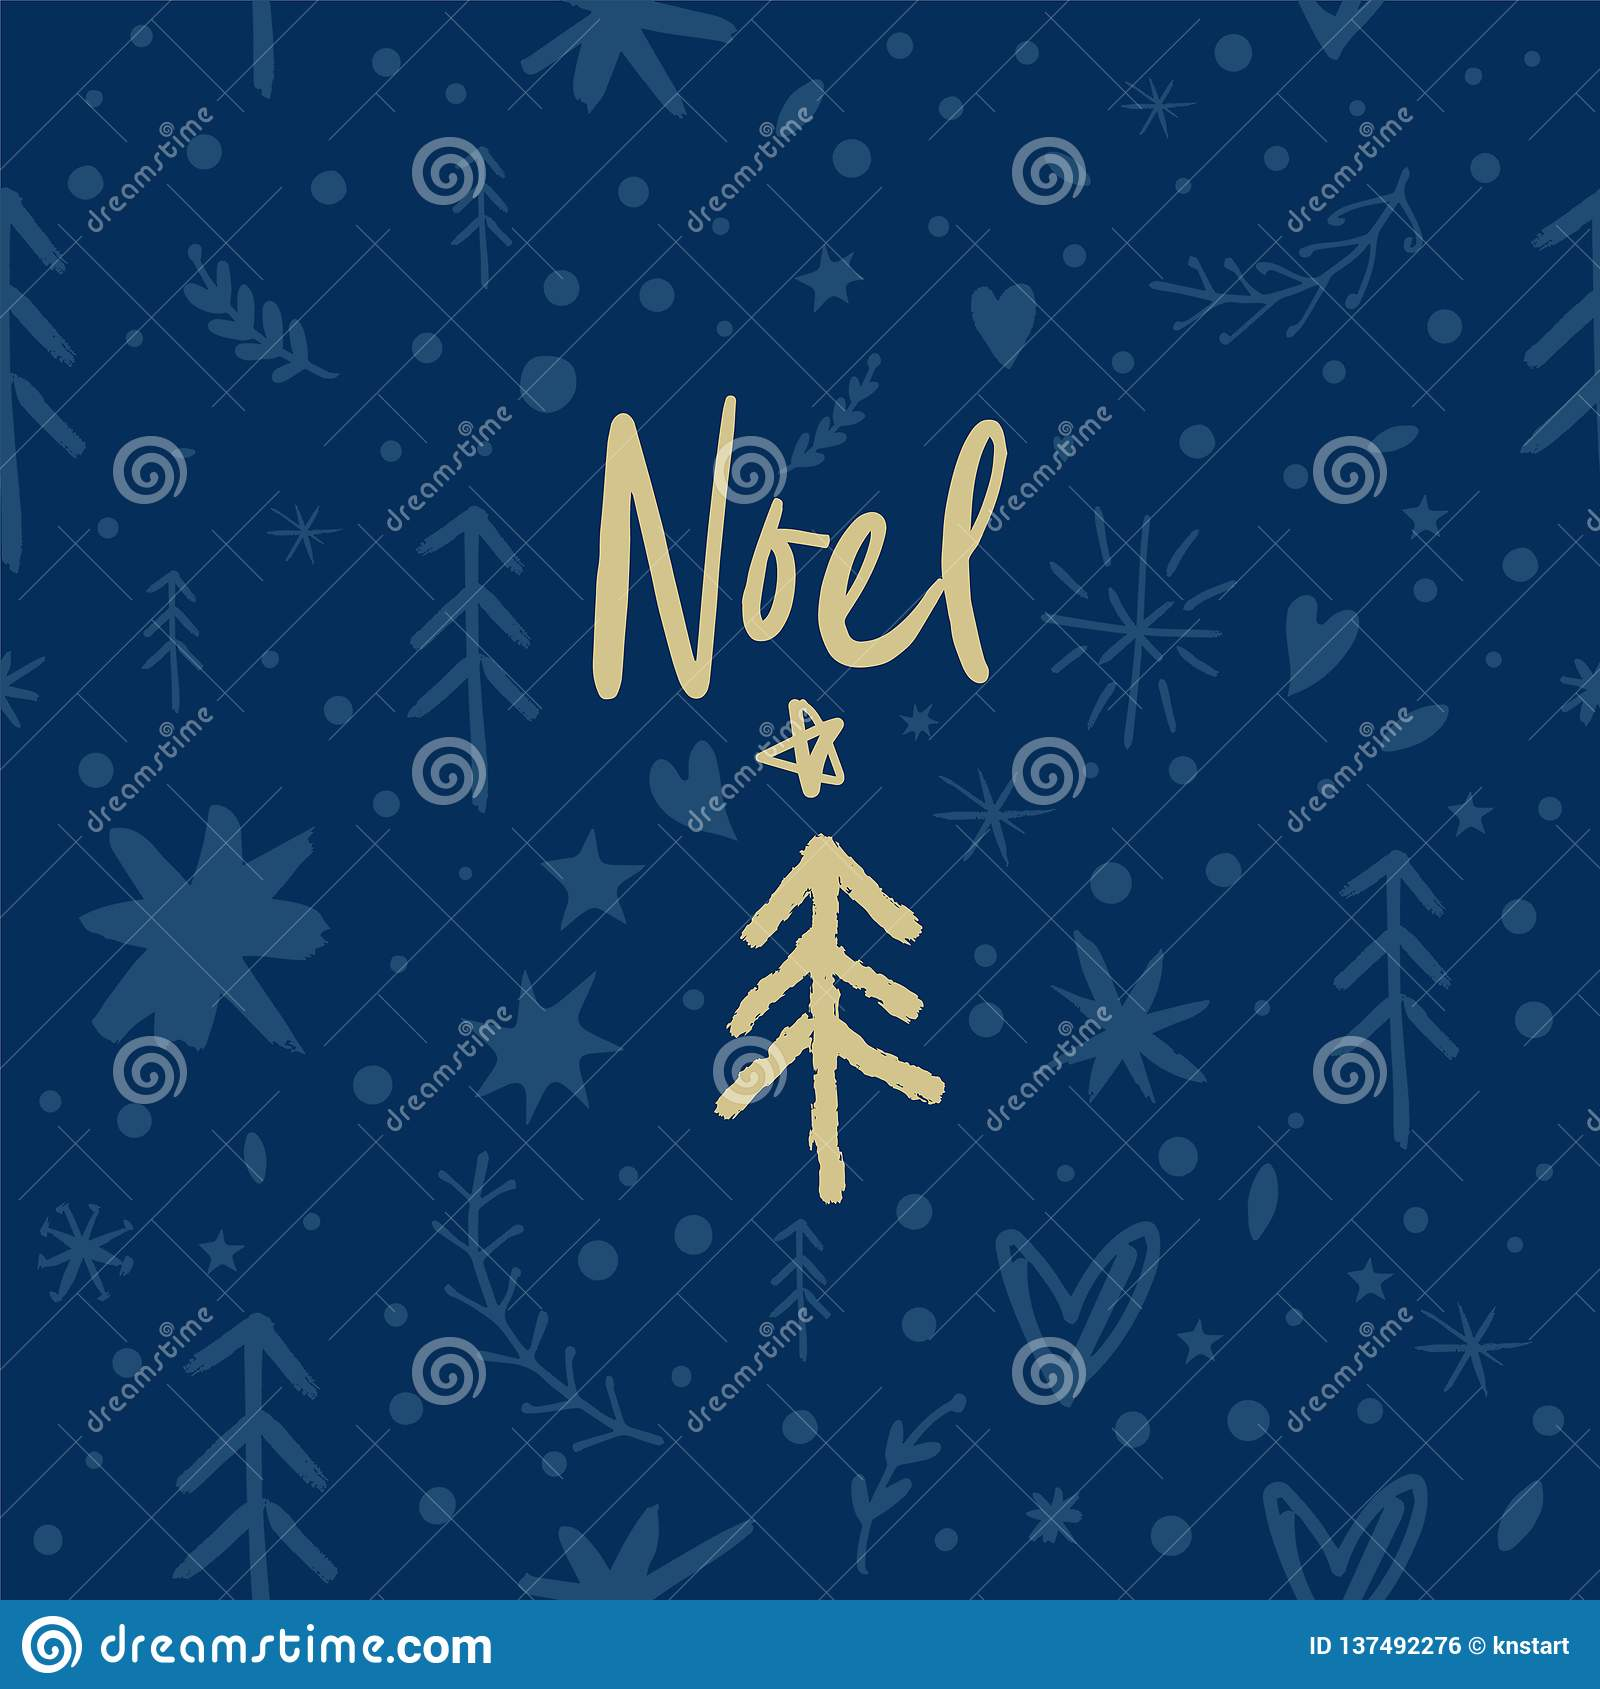 Vector festive Noel pattern, ornament, Christmas and New Year theme